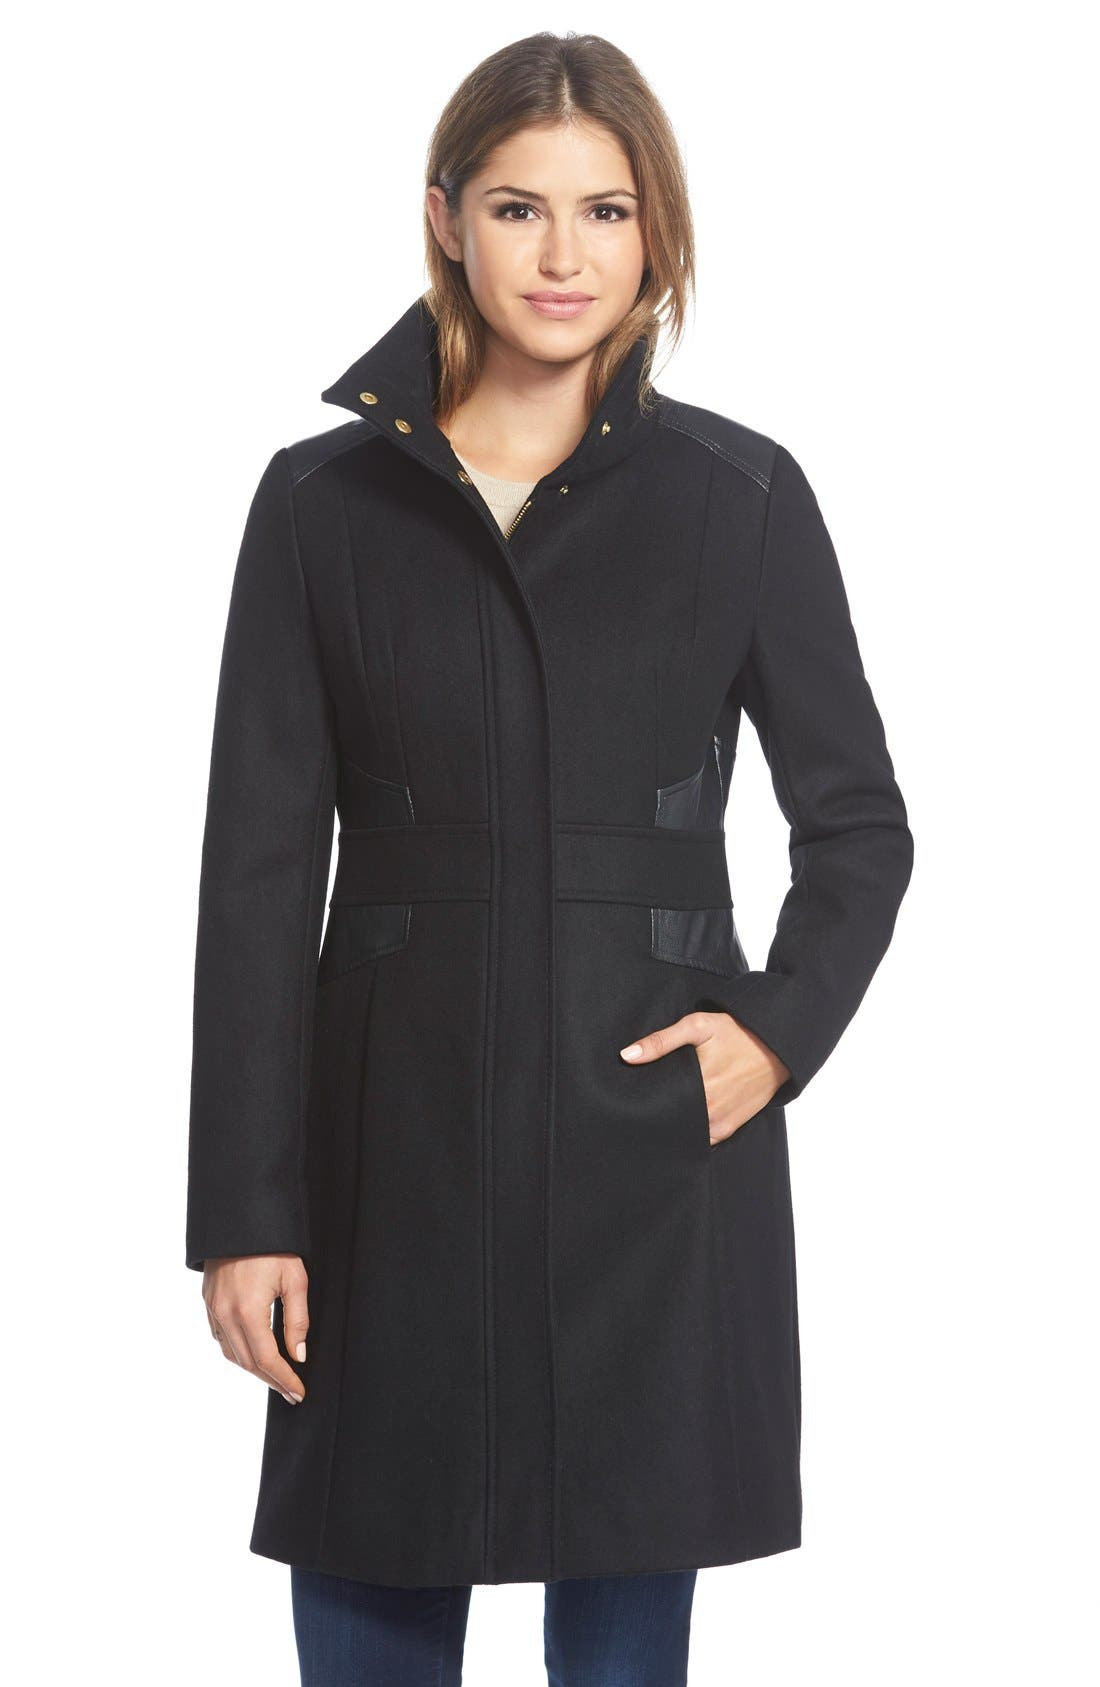 Wool Blend Coat with Faux Leather Trim,                             Main thumbnail 1, color,                             001